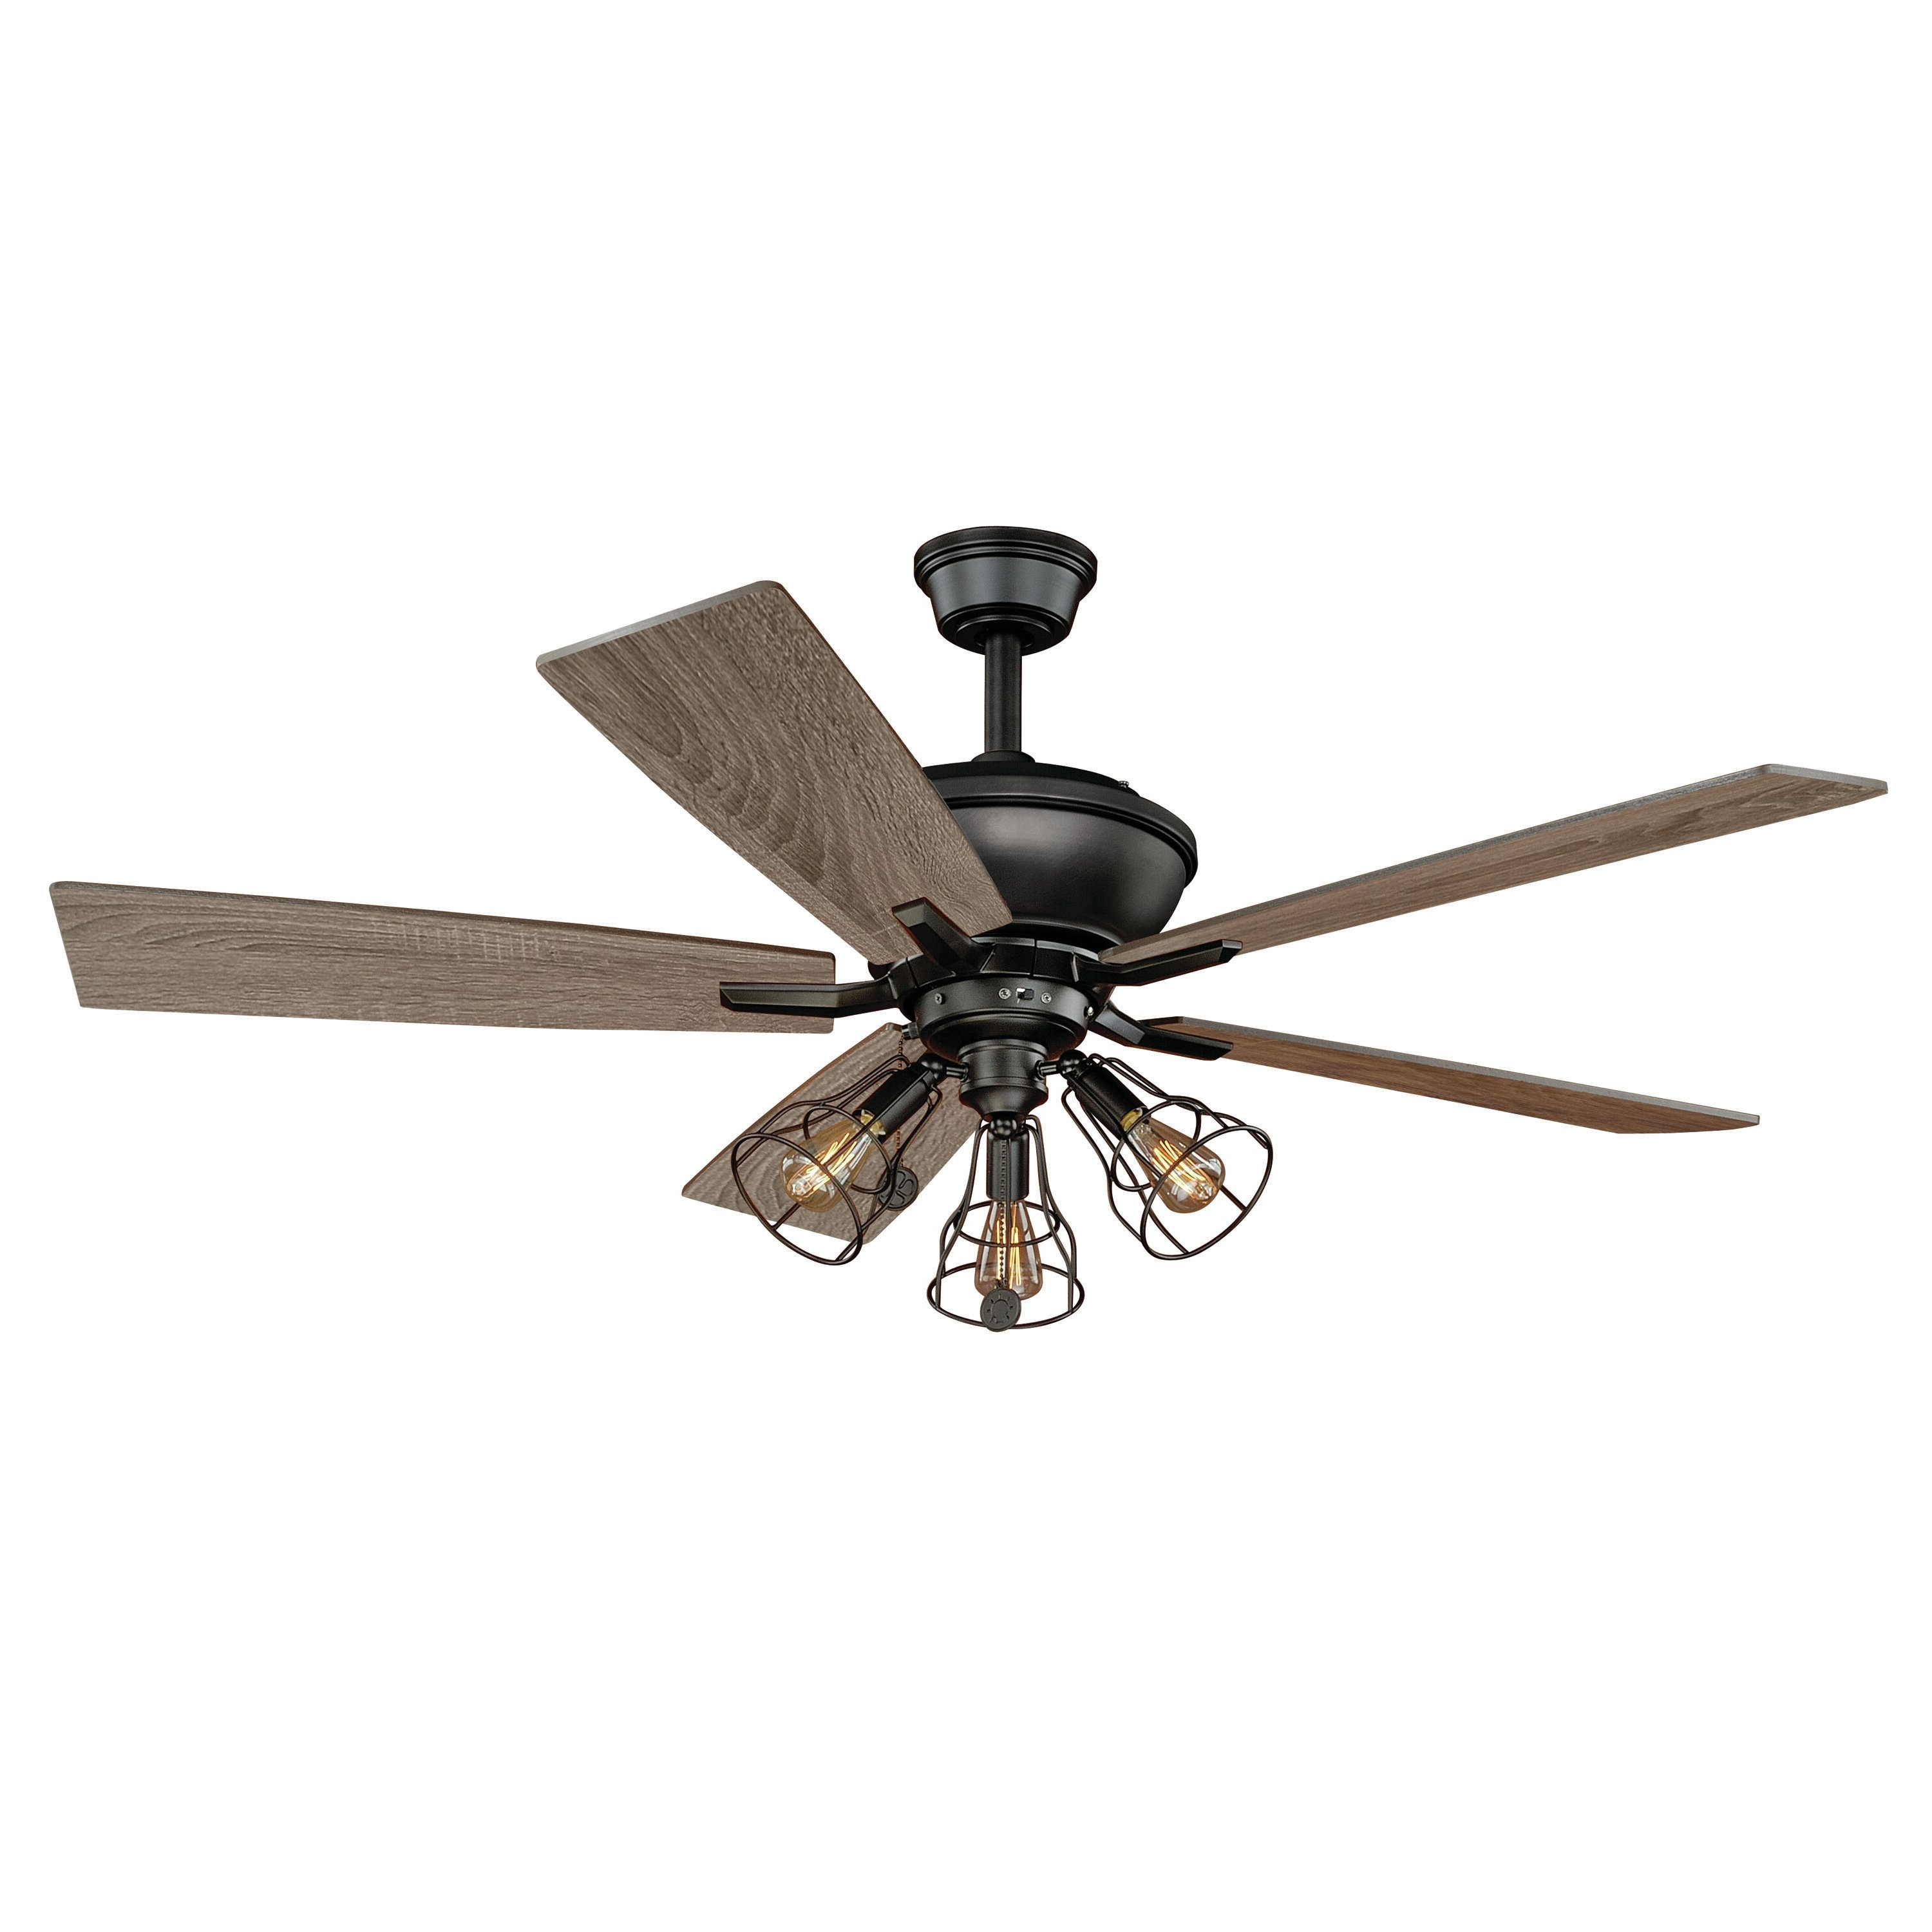 "52"" Clybourn 5 Blade Ceiling Fan In Fashionable Ratcliffe 5 Blade Led Ceiling Fans (View 2 of 20)"